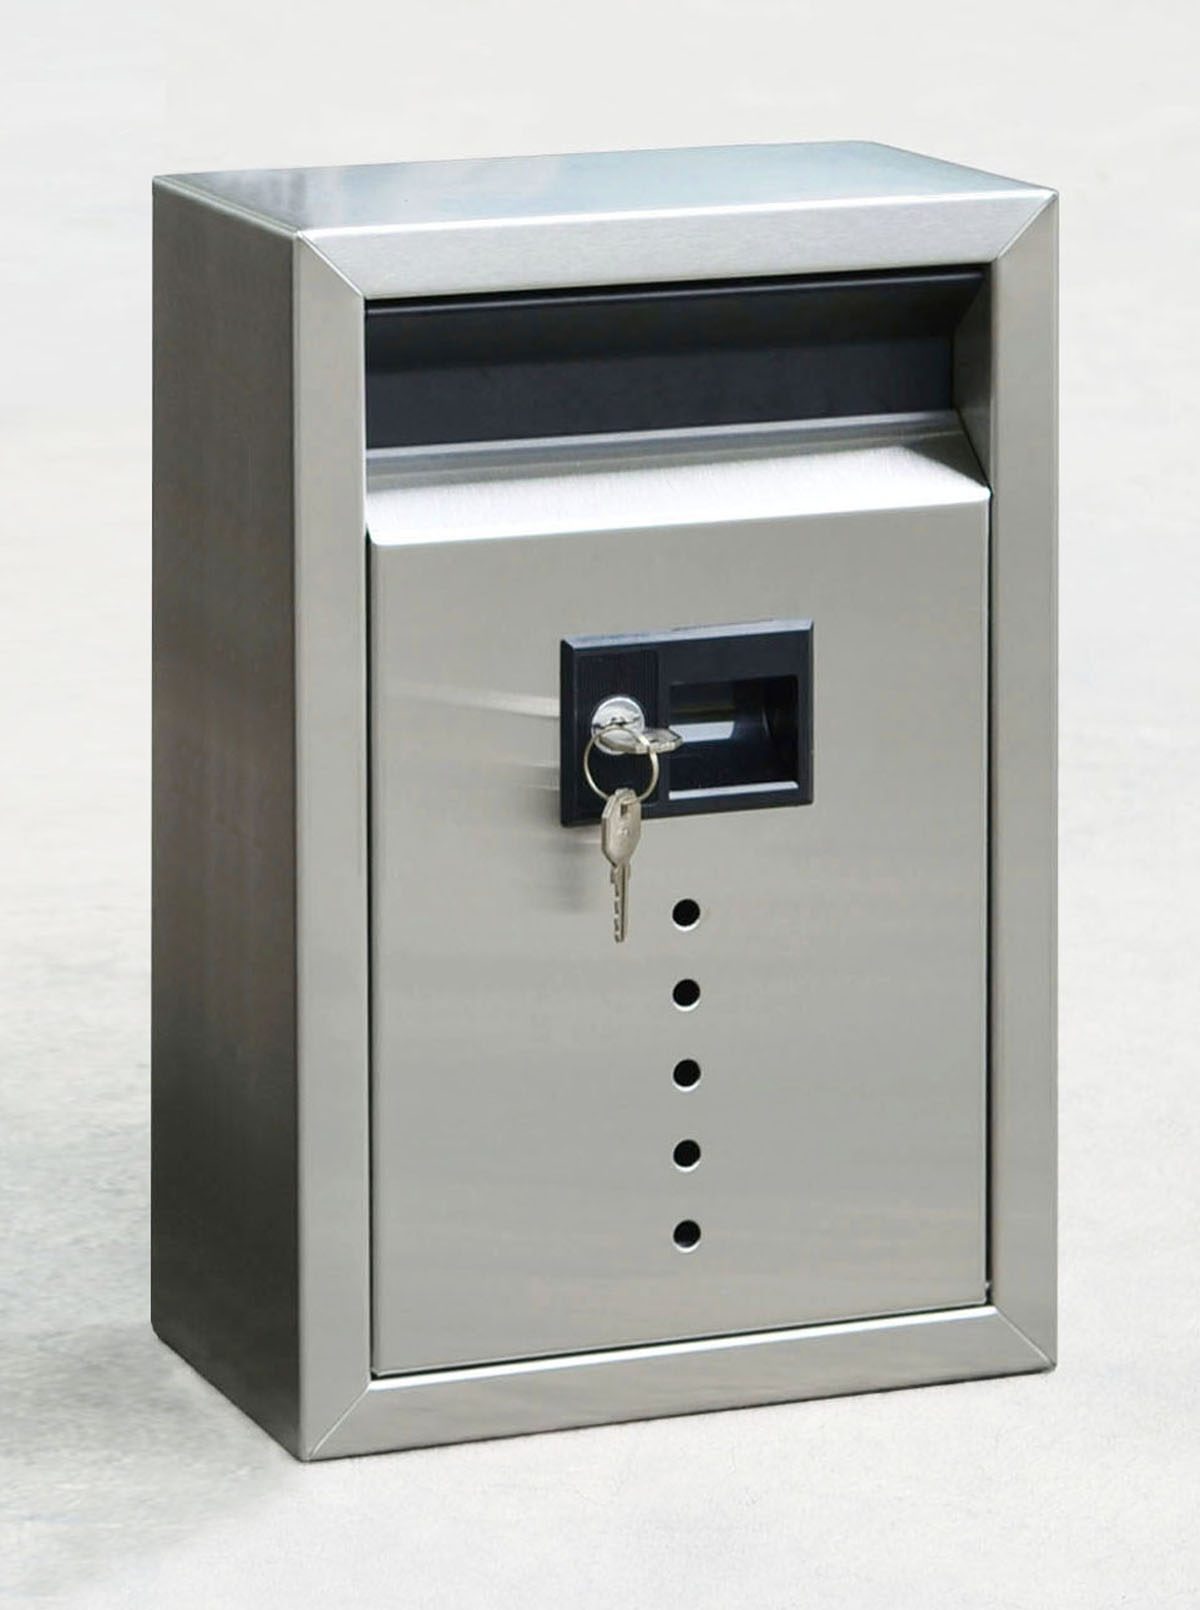 Ecco Fuoriserie E9 Small Stainless Steel Locking Mailbox